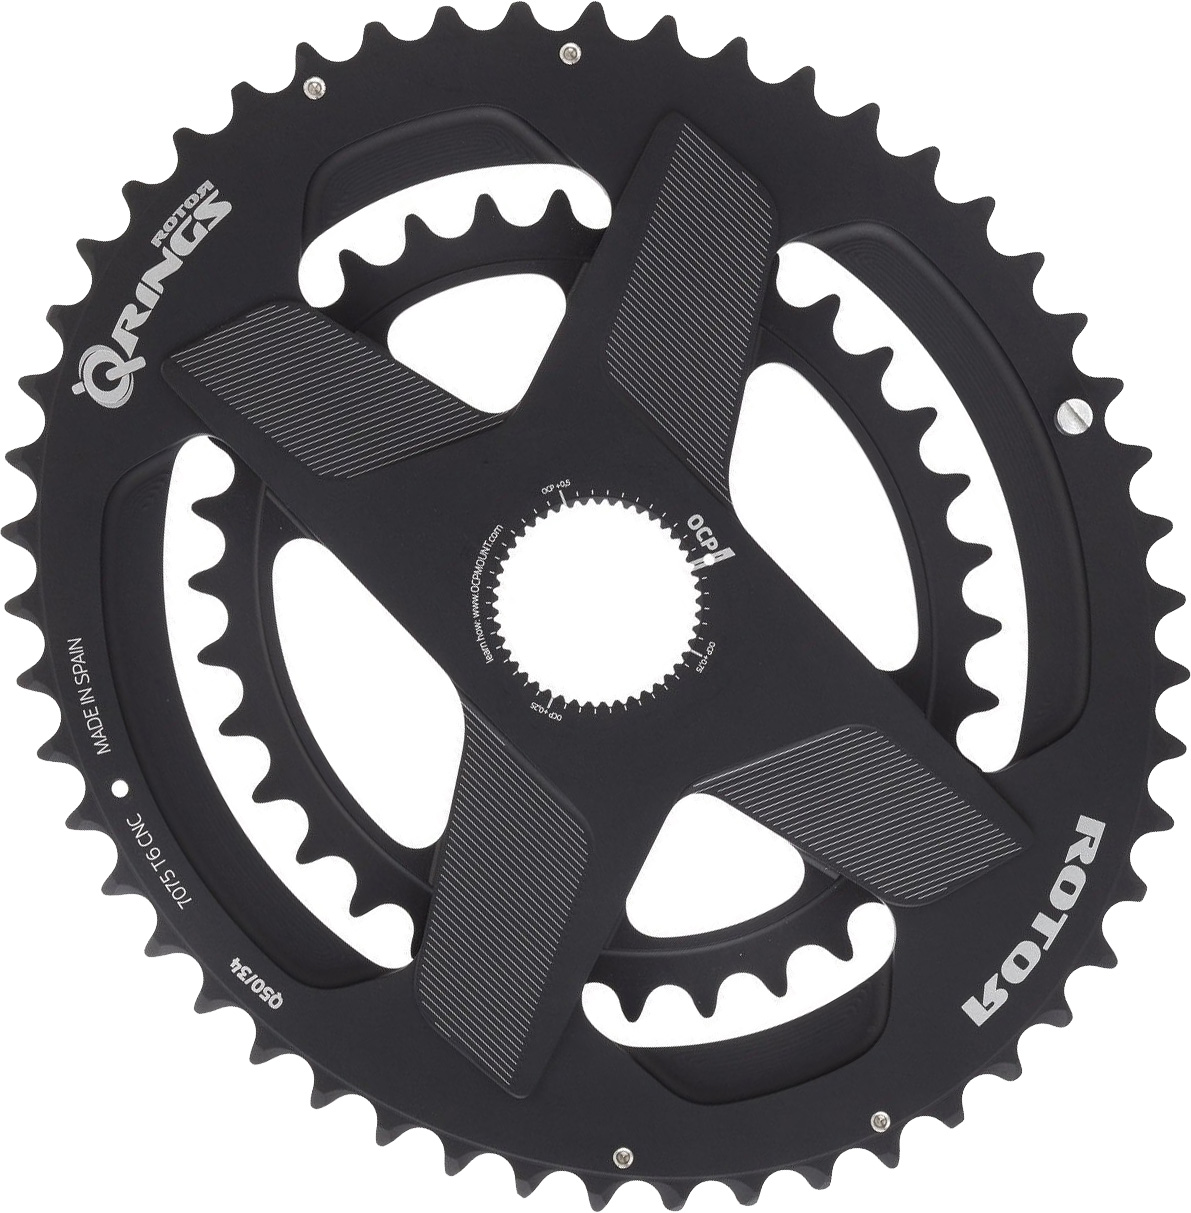 Rotor Q Rings DM Oval Chainrings | chainrings_component